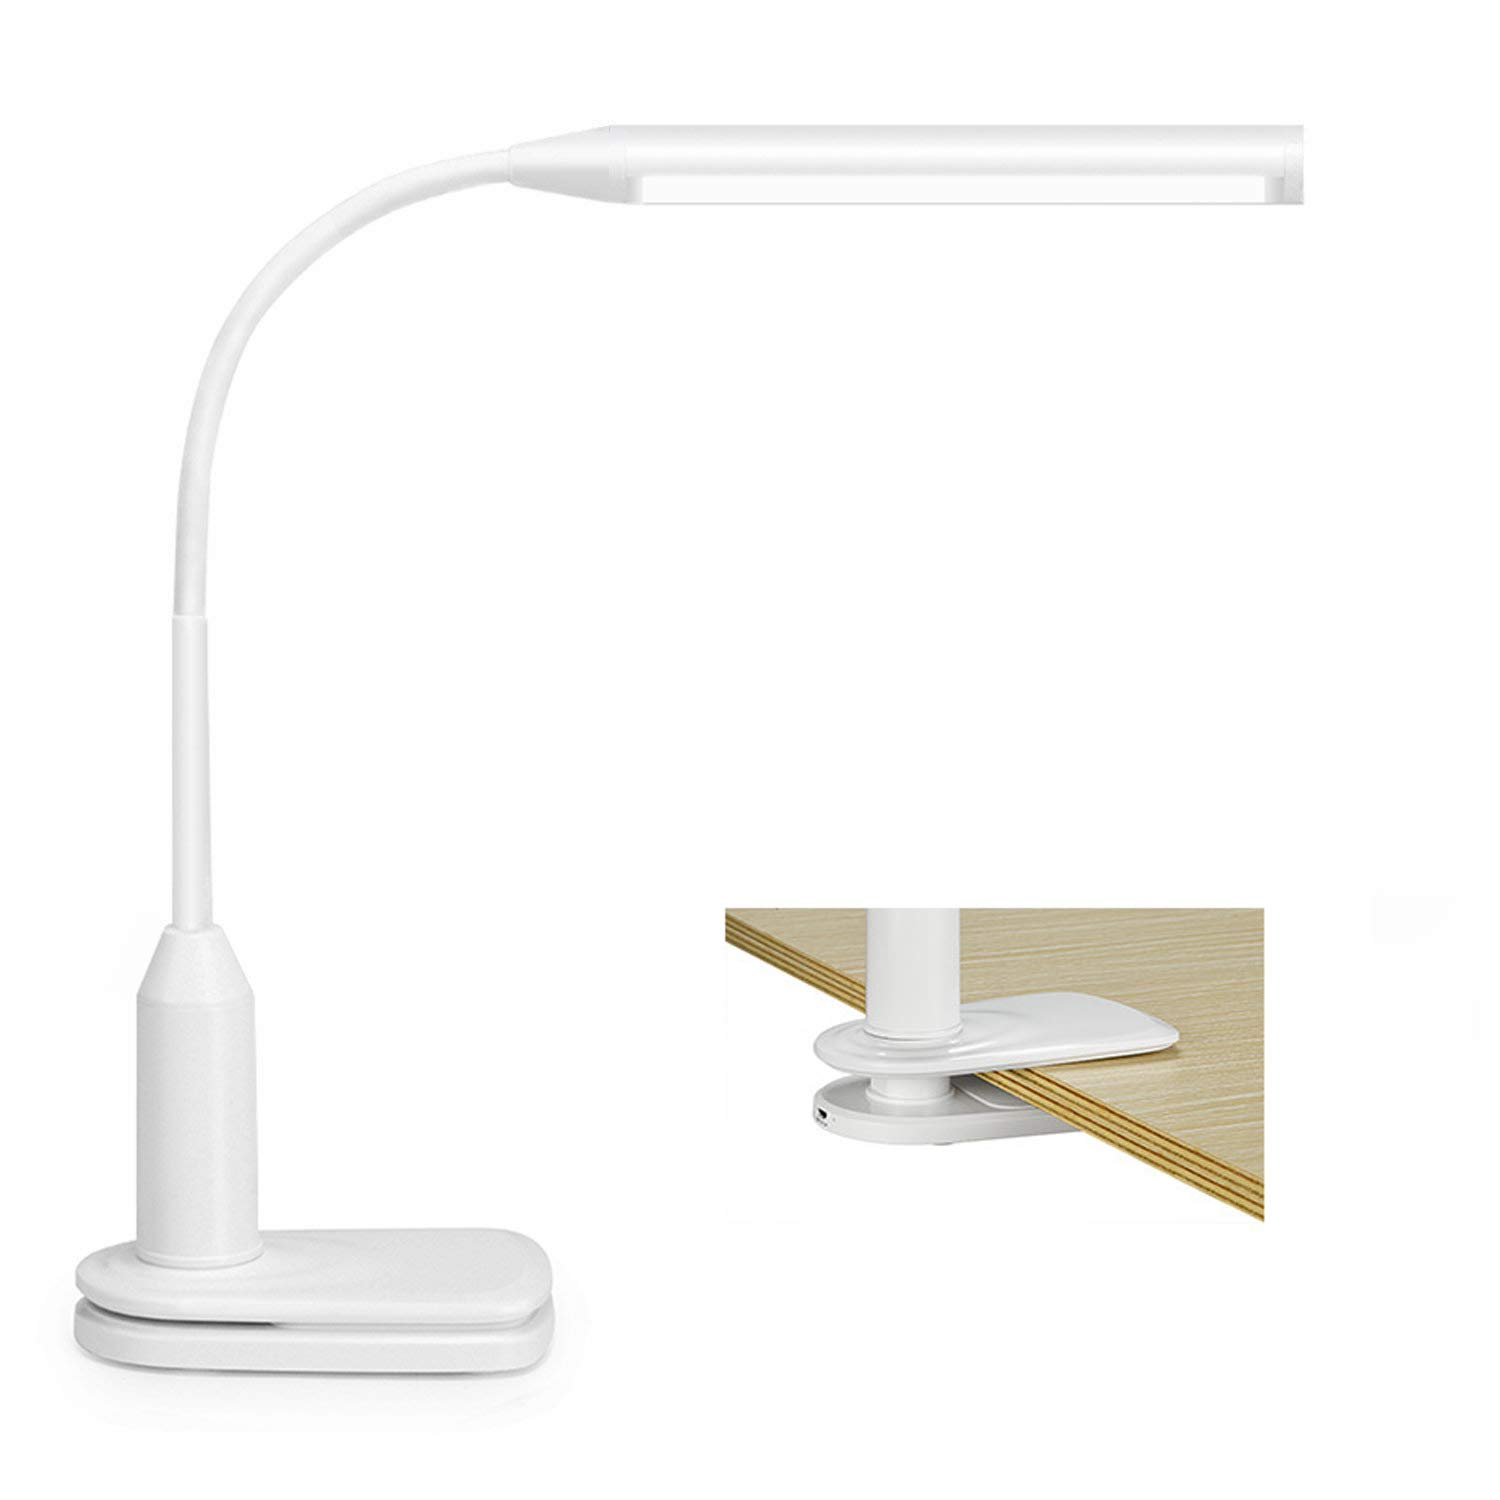 Lights & Lighting Capable Adjustable Usb Led Desk Lamps Clamp Clip Rechargeable Table For Reading Energy Saving Touch Switch Lamp For Living Room Spare No Cost At Any Cost Lamps & Shades